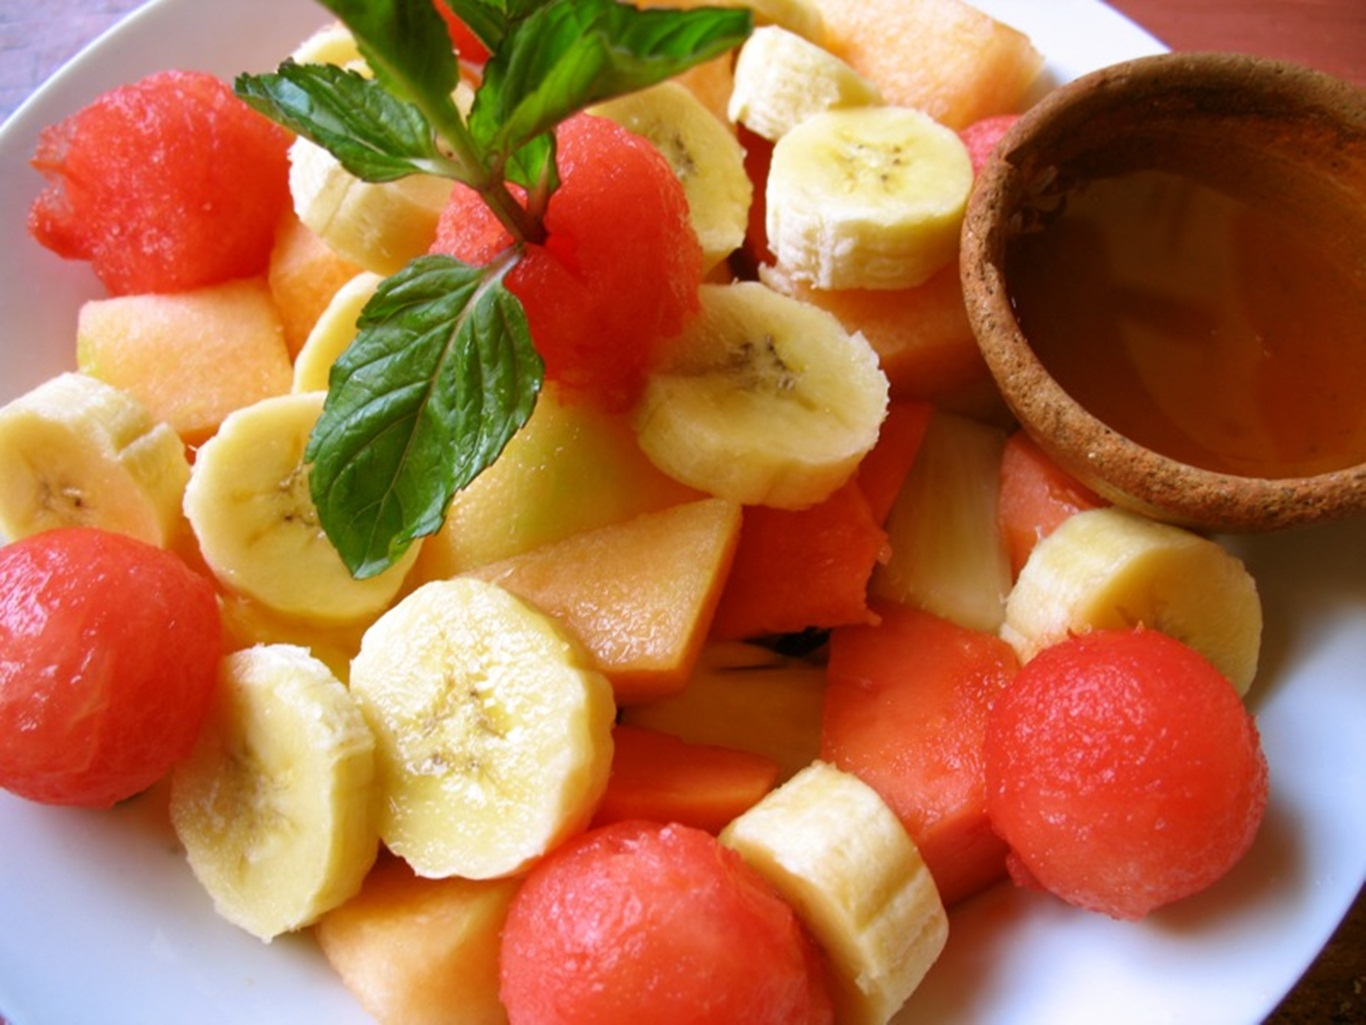 fruits-wallpapers-20-photos- (10)